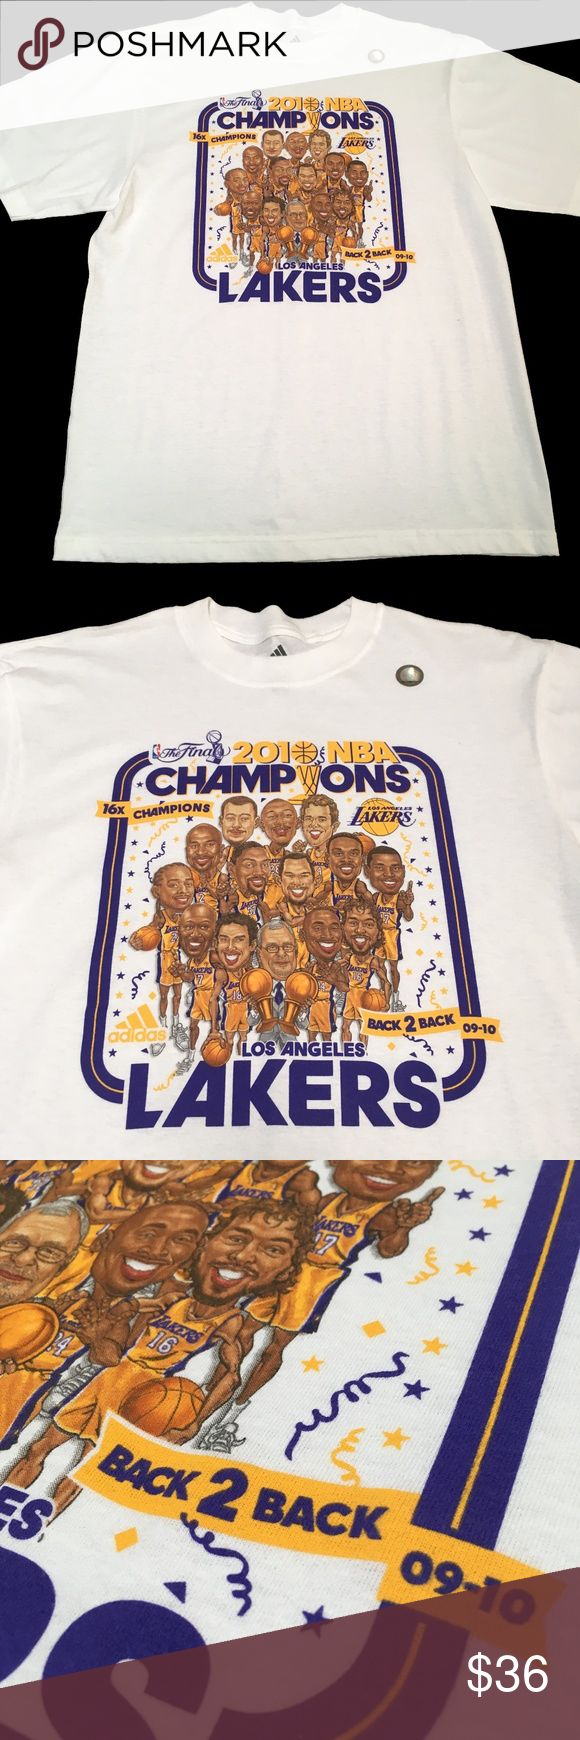 LA Lakers 09-10 Back 2 Back Champs Kobe Basketball Brand new condition Rings baby! Kobe Represent Trusted Adidas quality  Please check measurements in pics for fit reference  Smoke and pet free environment Happy to answer any questions or provide more images  Thanks for looking and Happy Poshing! Adidas Shirts Tees - Short Sleeve